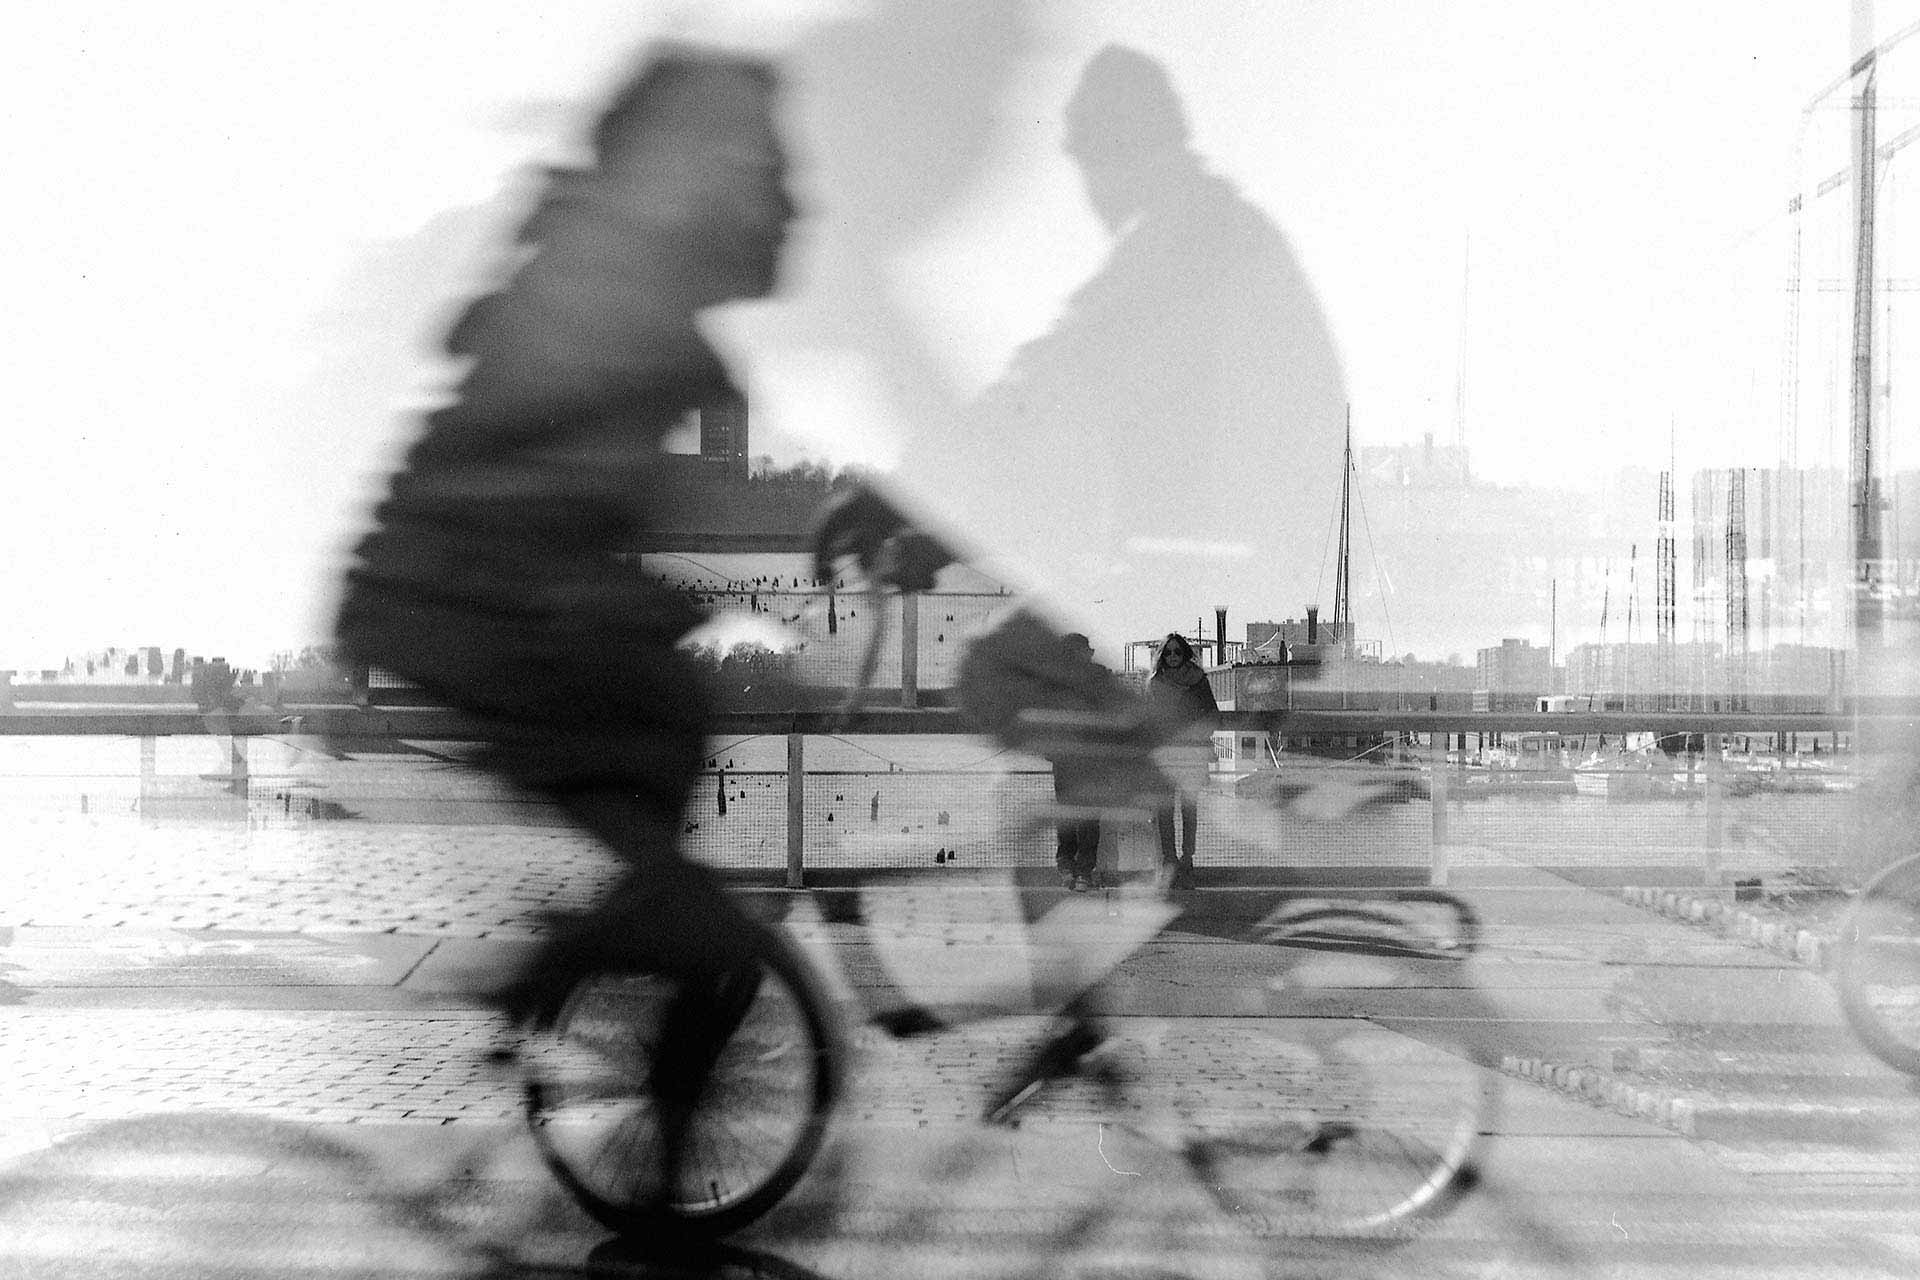 Double exposed photo of bicyclists